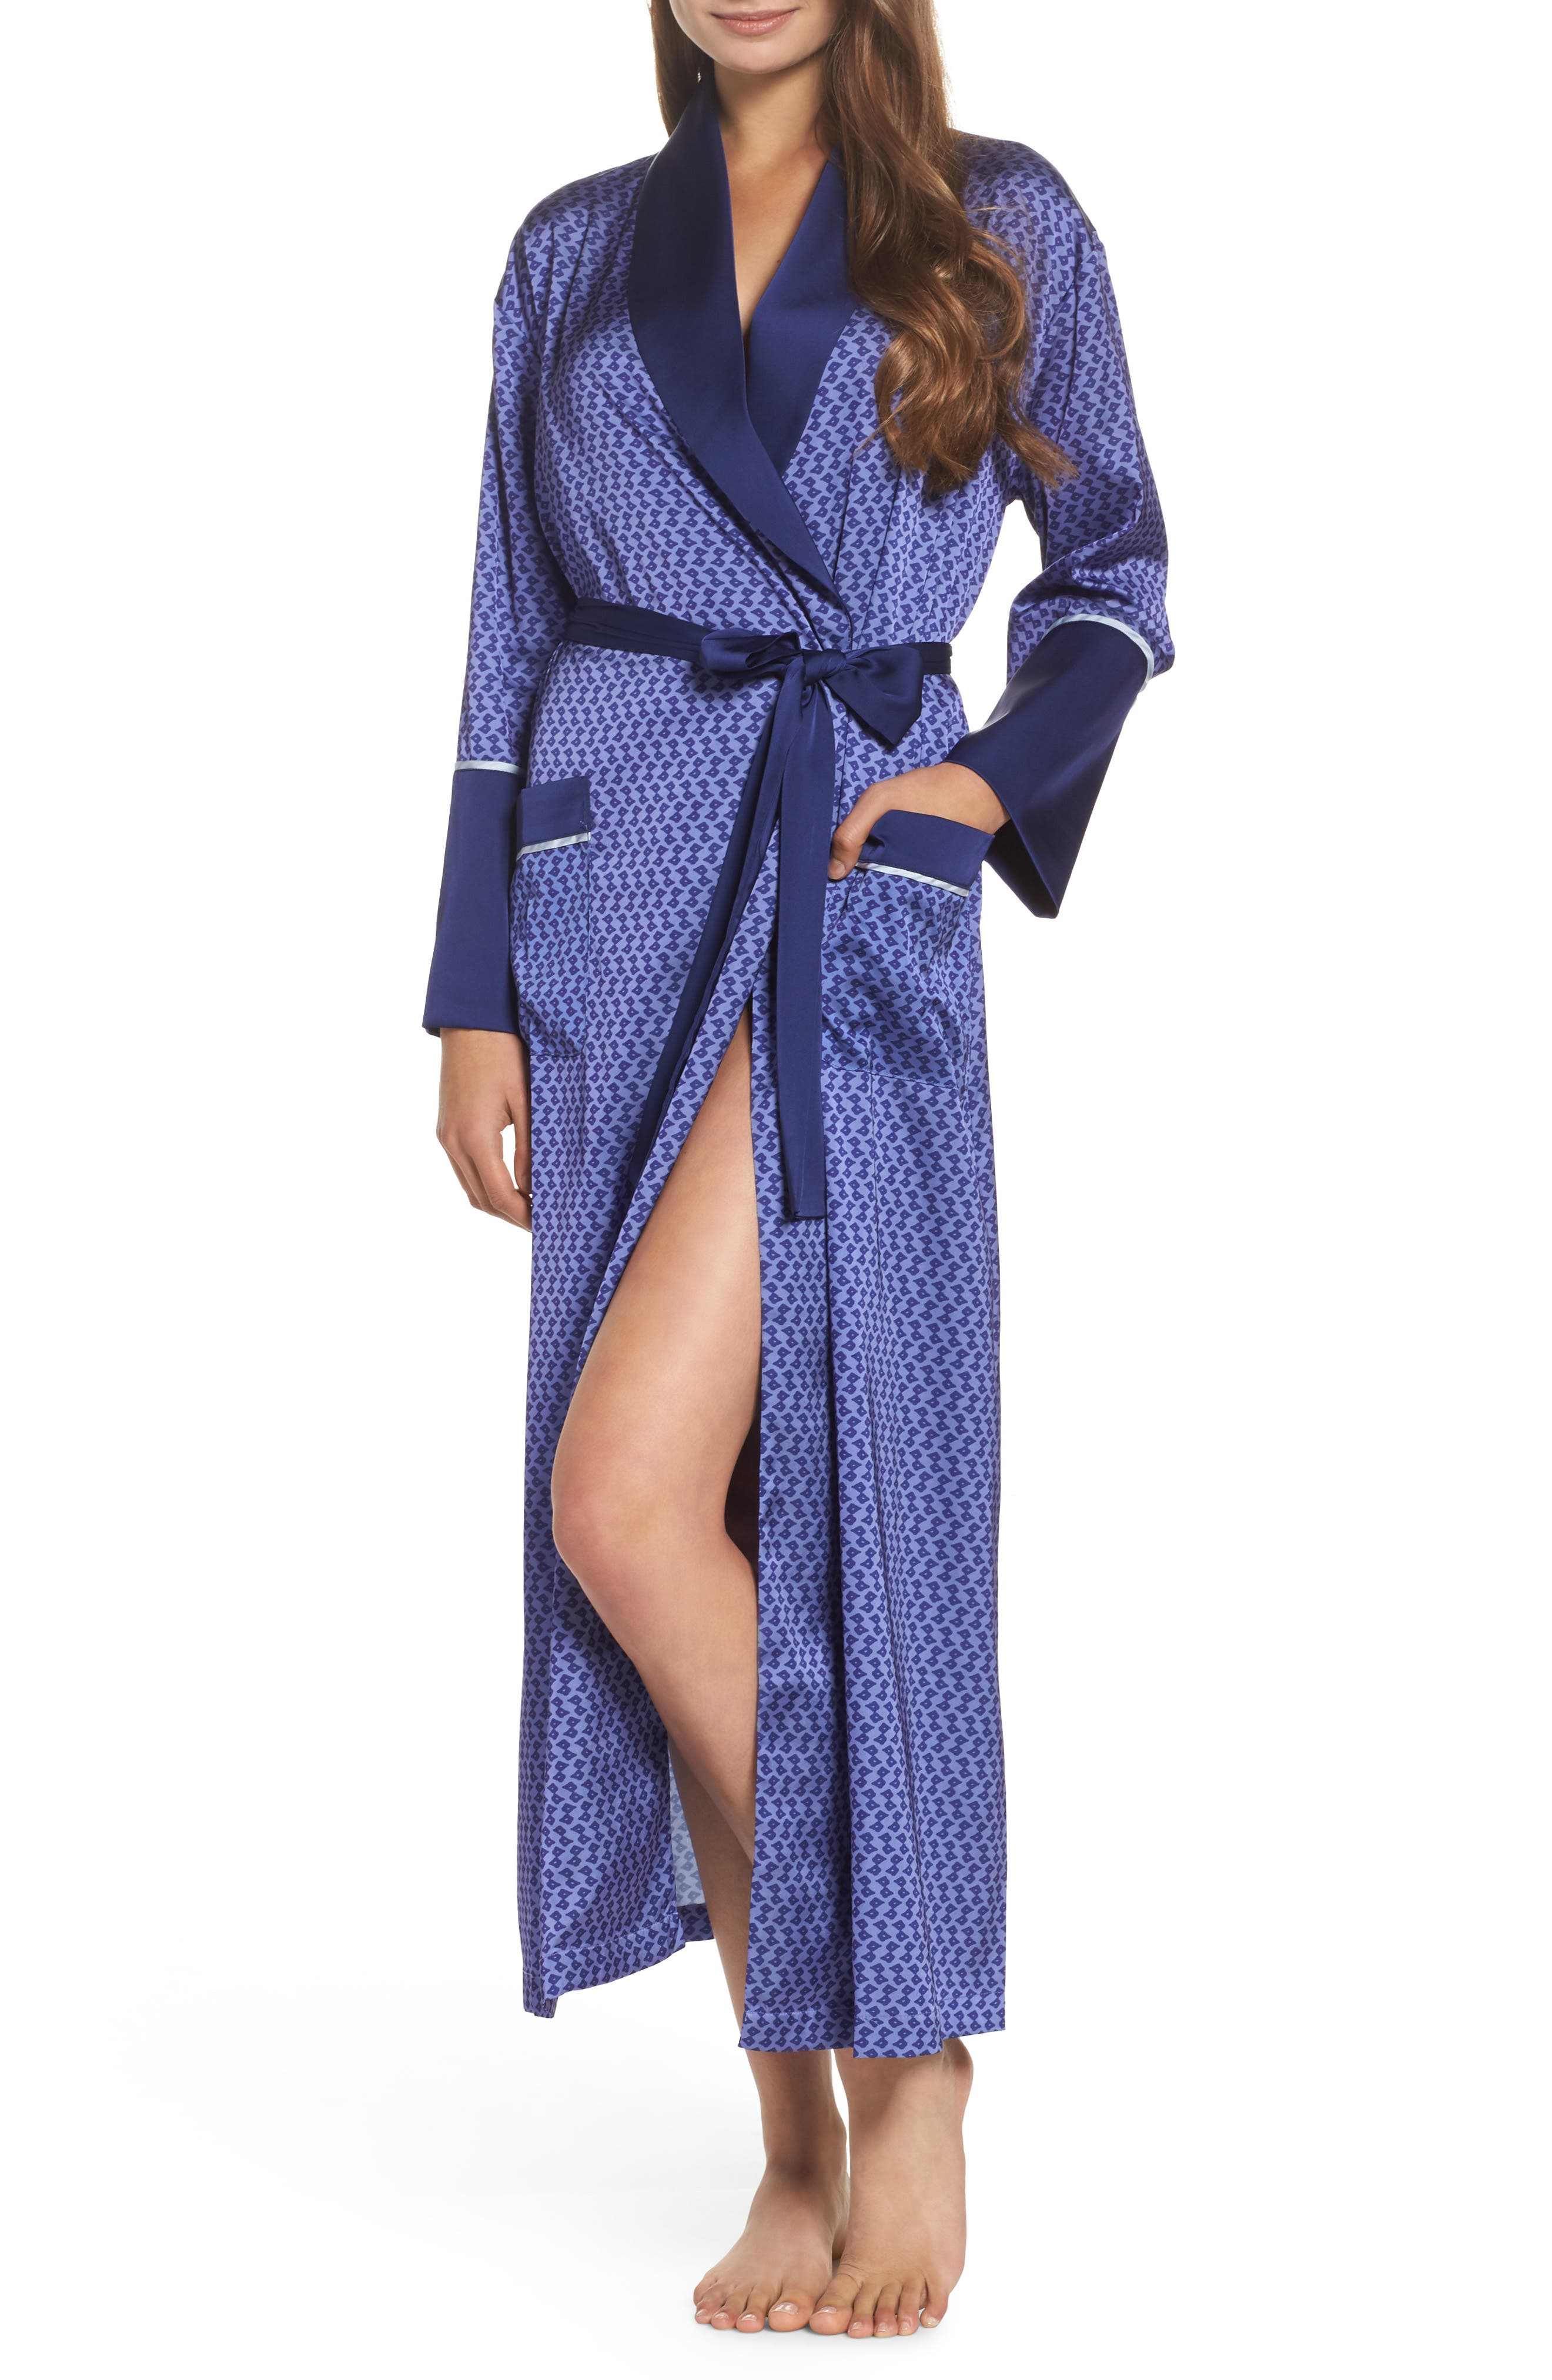 Alternate Image 1 Selected - Bed to Brunch Satin Robe